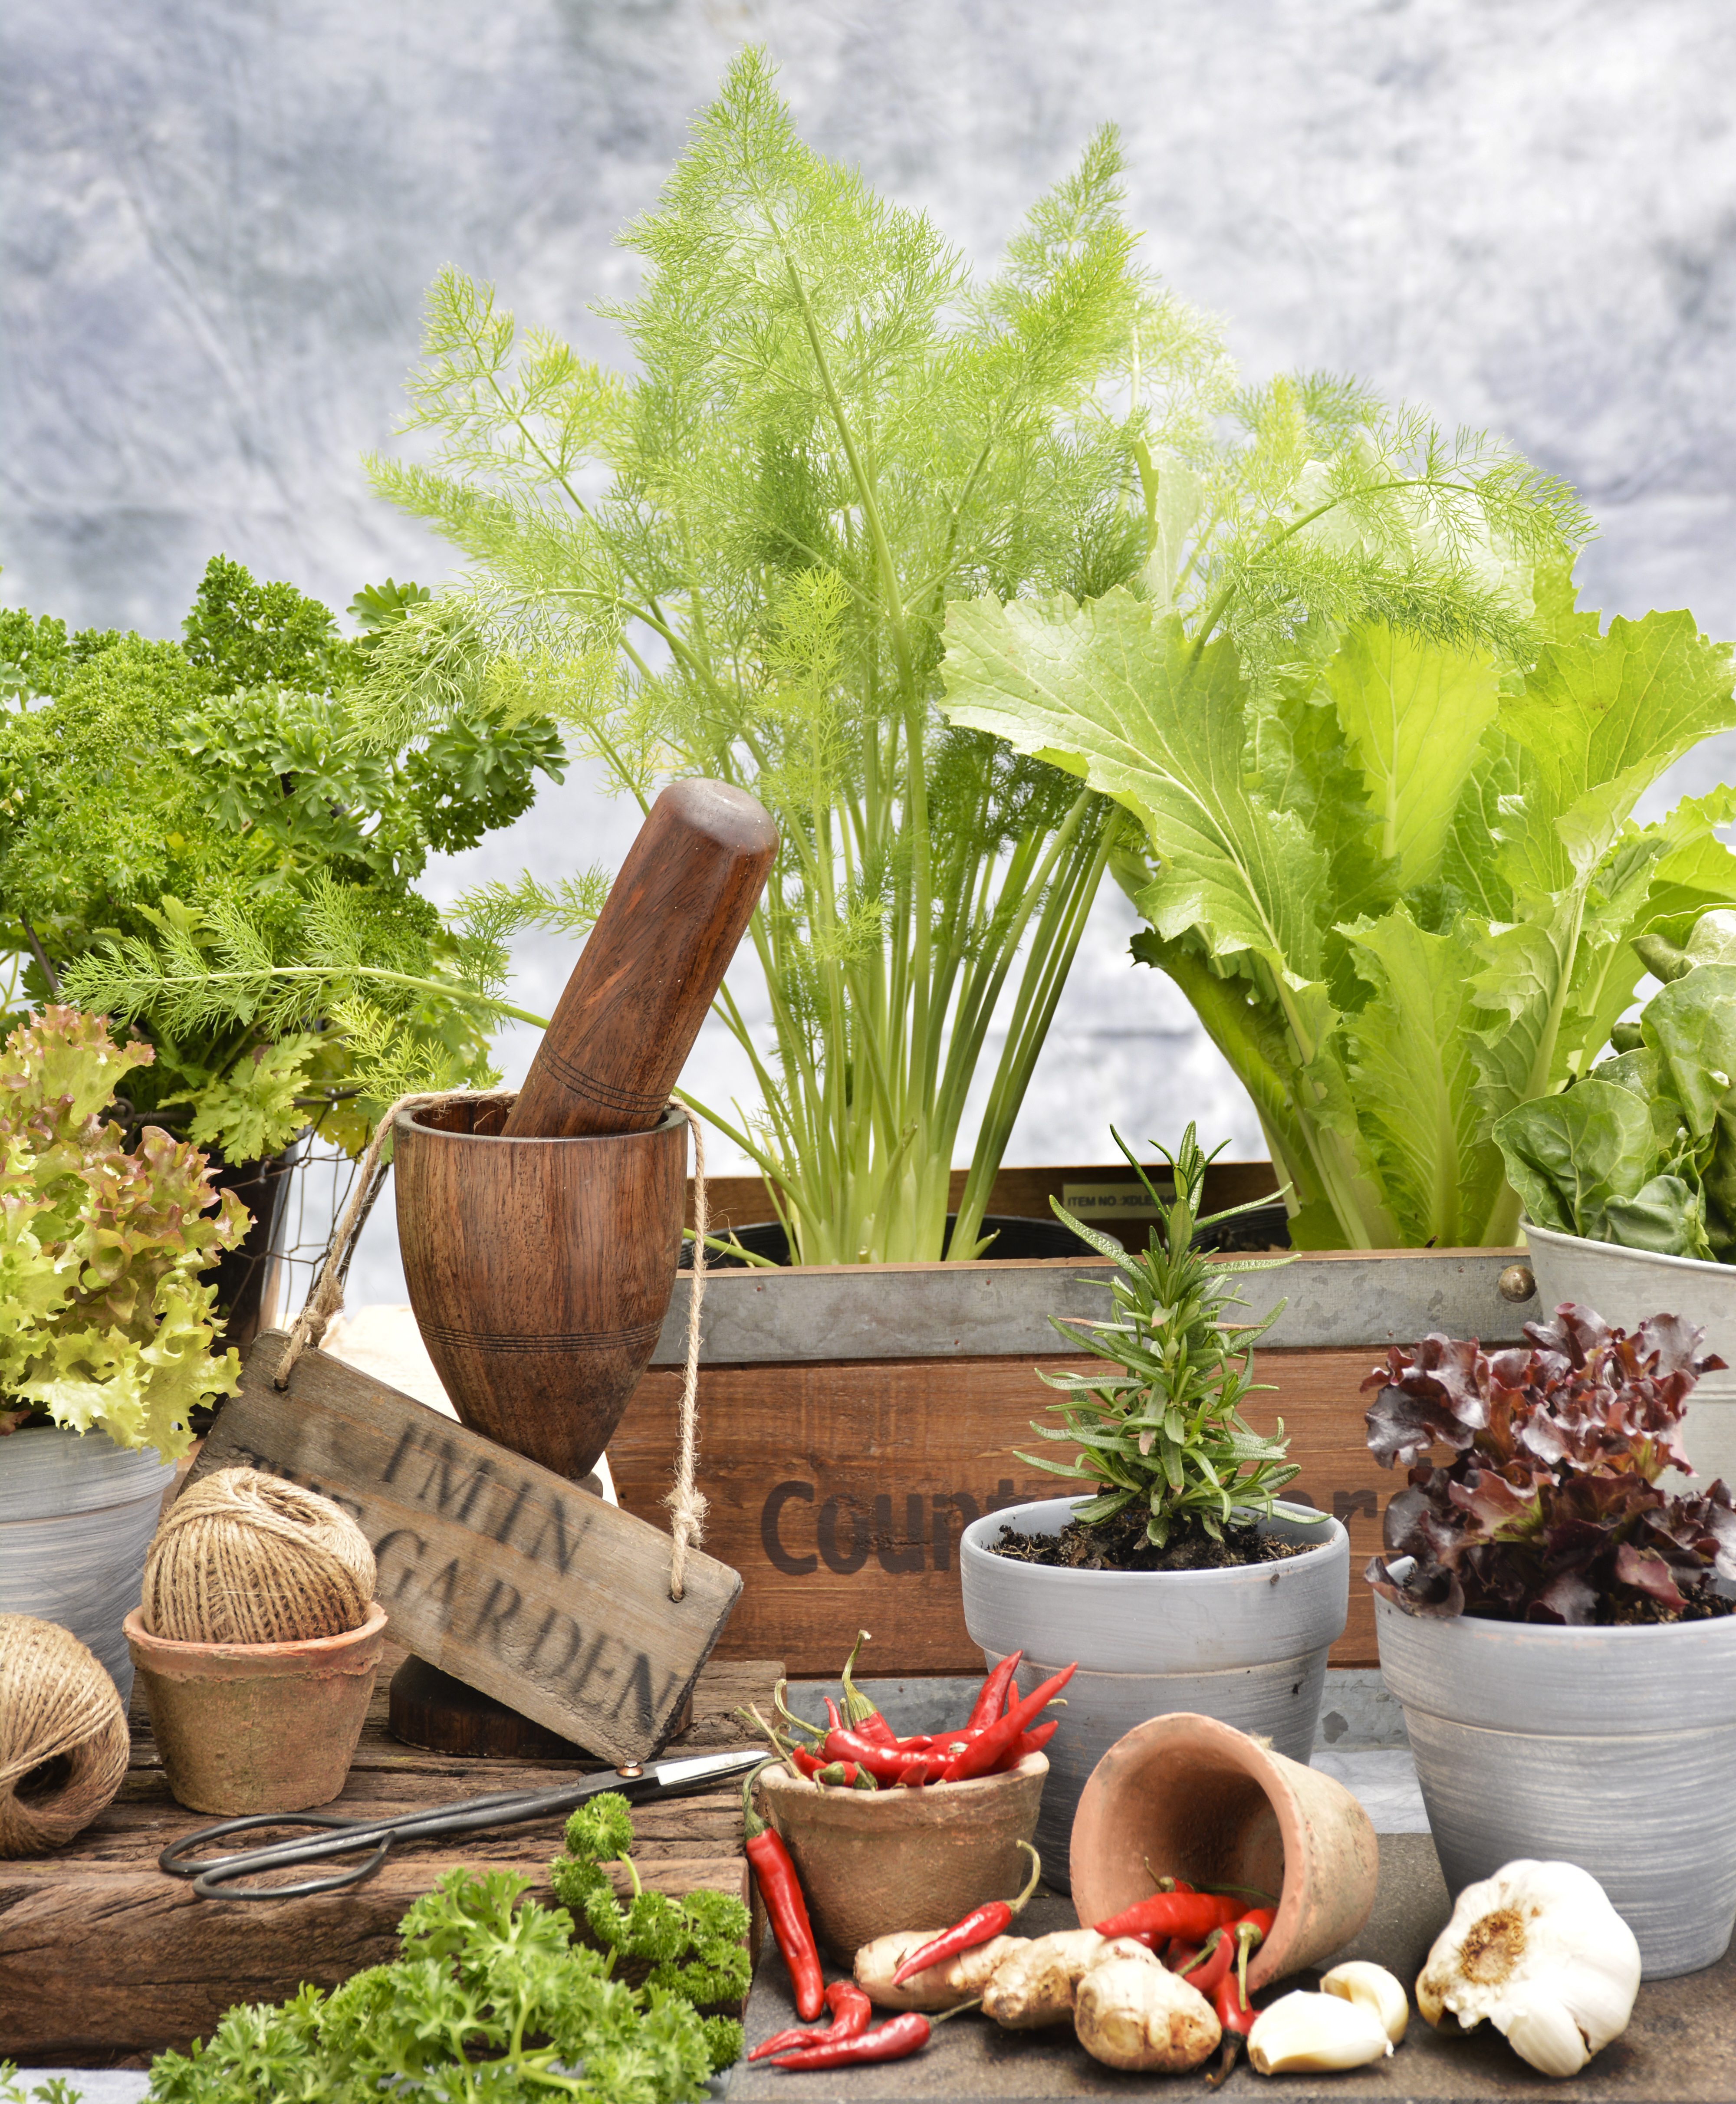 lifestyle home garden nursery plant shop vegetables fruit herbs grow your own edibles food fresh johannesburg gauteng